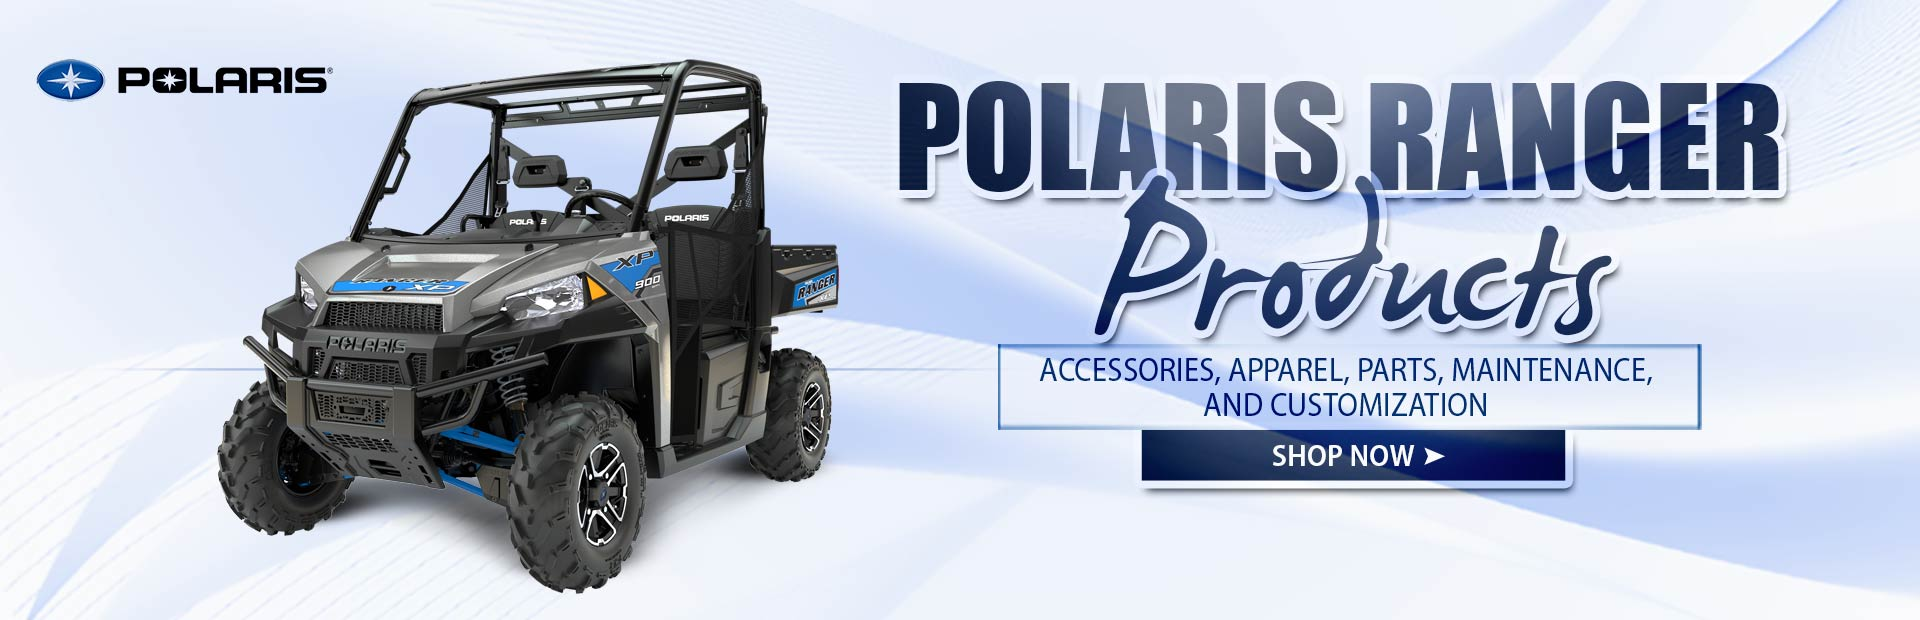 Click here to shop for Polaris Ranger products.